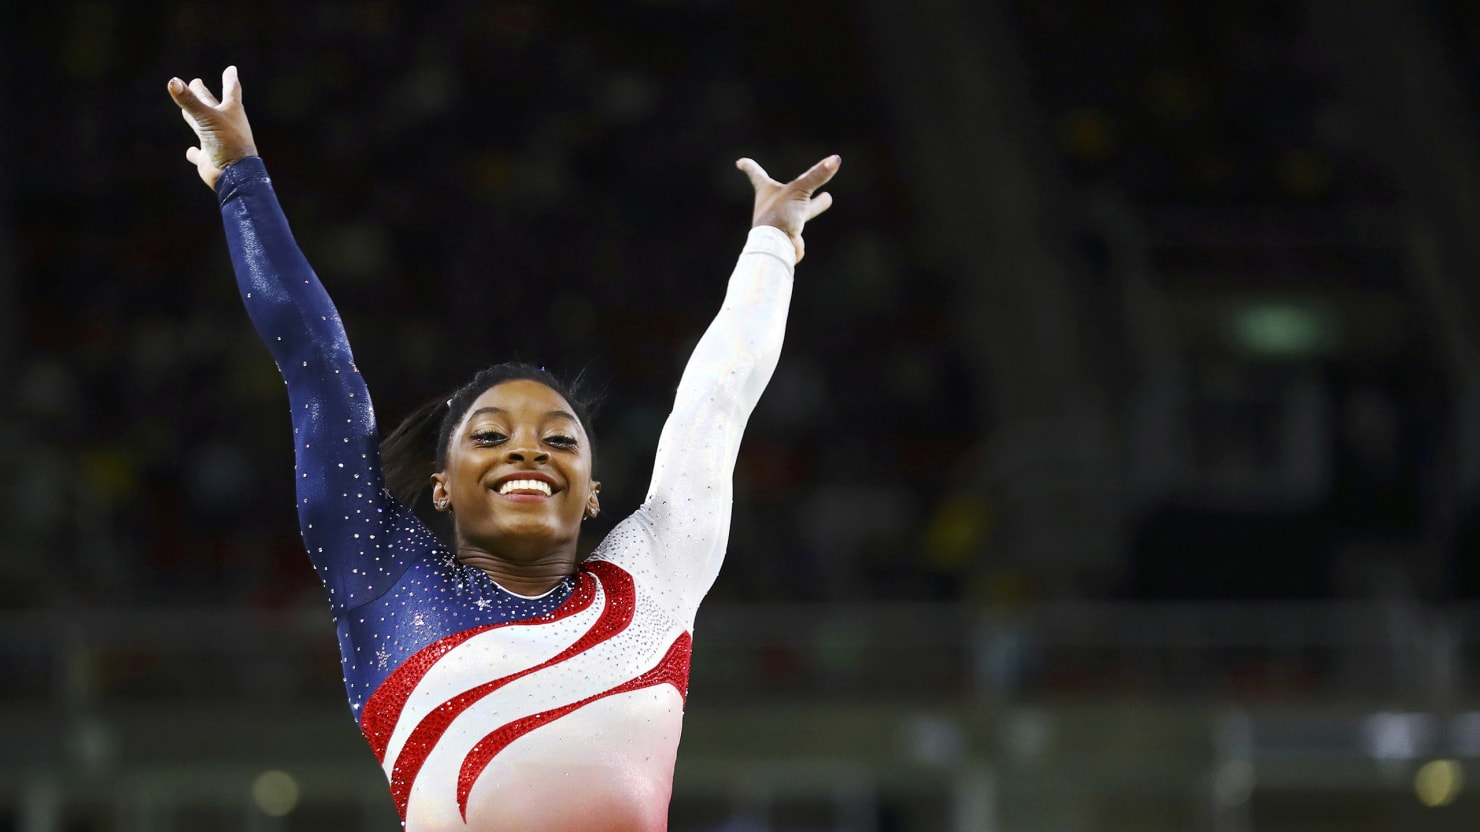 Rio Olympics: Gold Medal Gymnasts Are the Best U.S. Team Ever